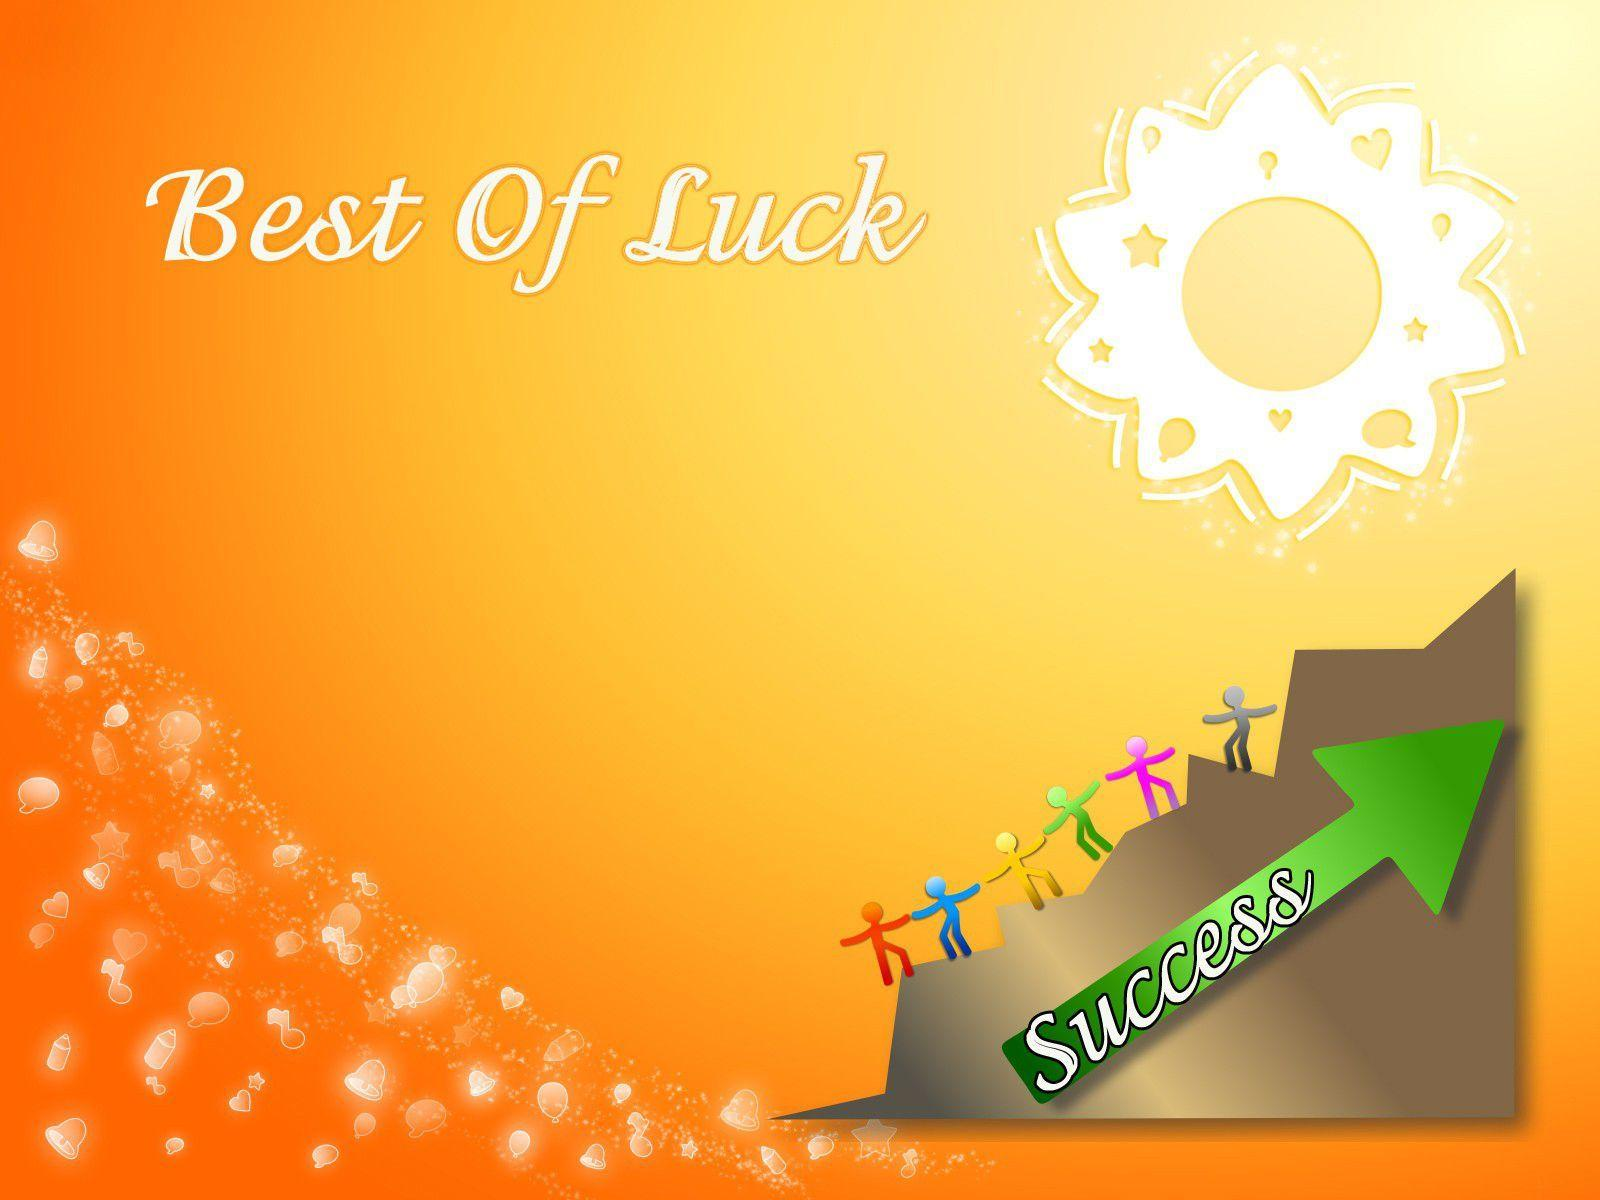 Wallpapers Of Best Of Luck Wallpaper Cave